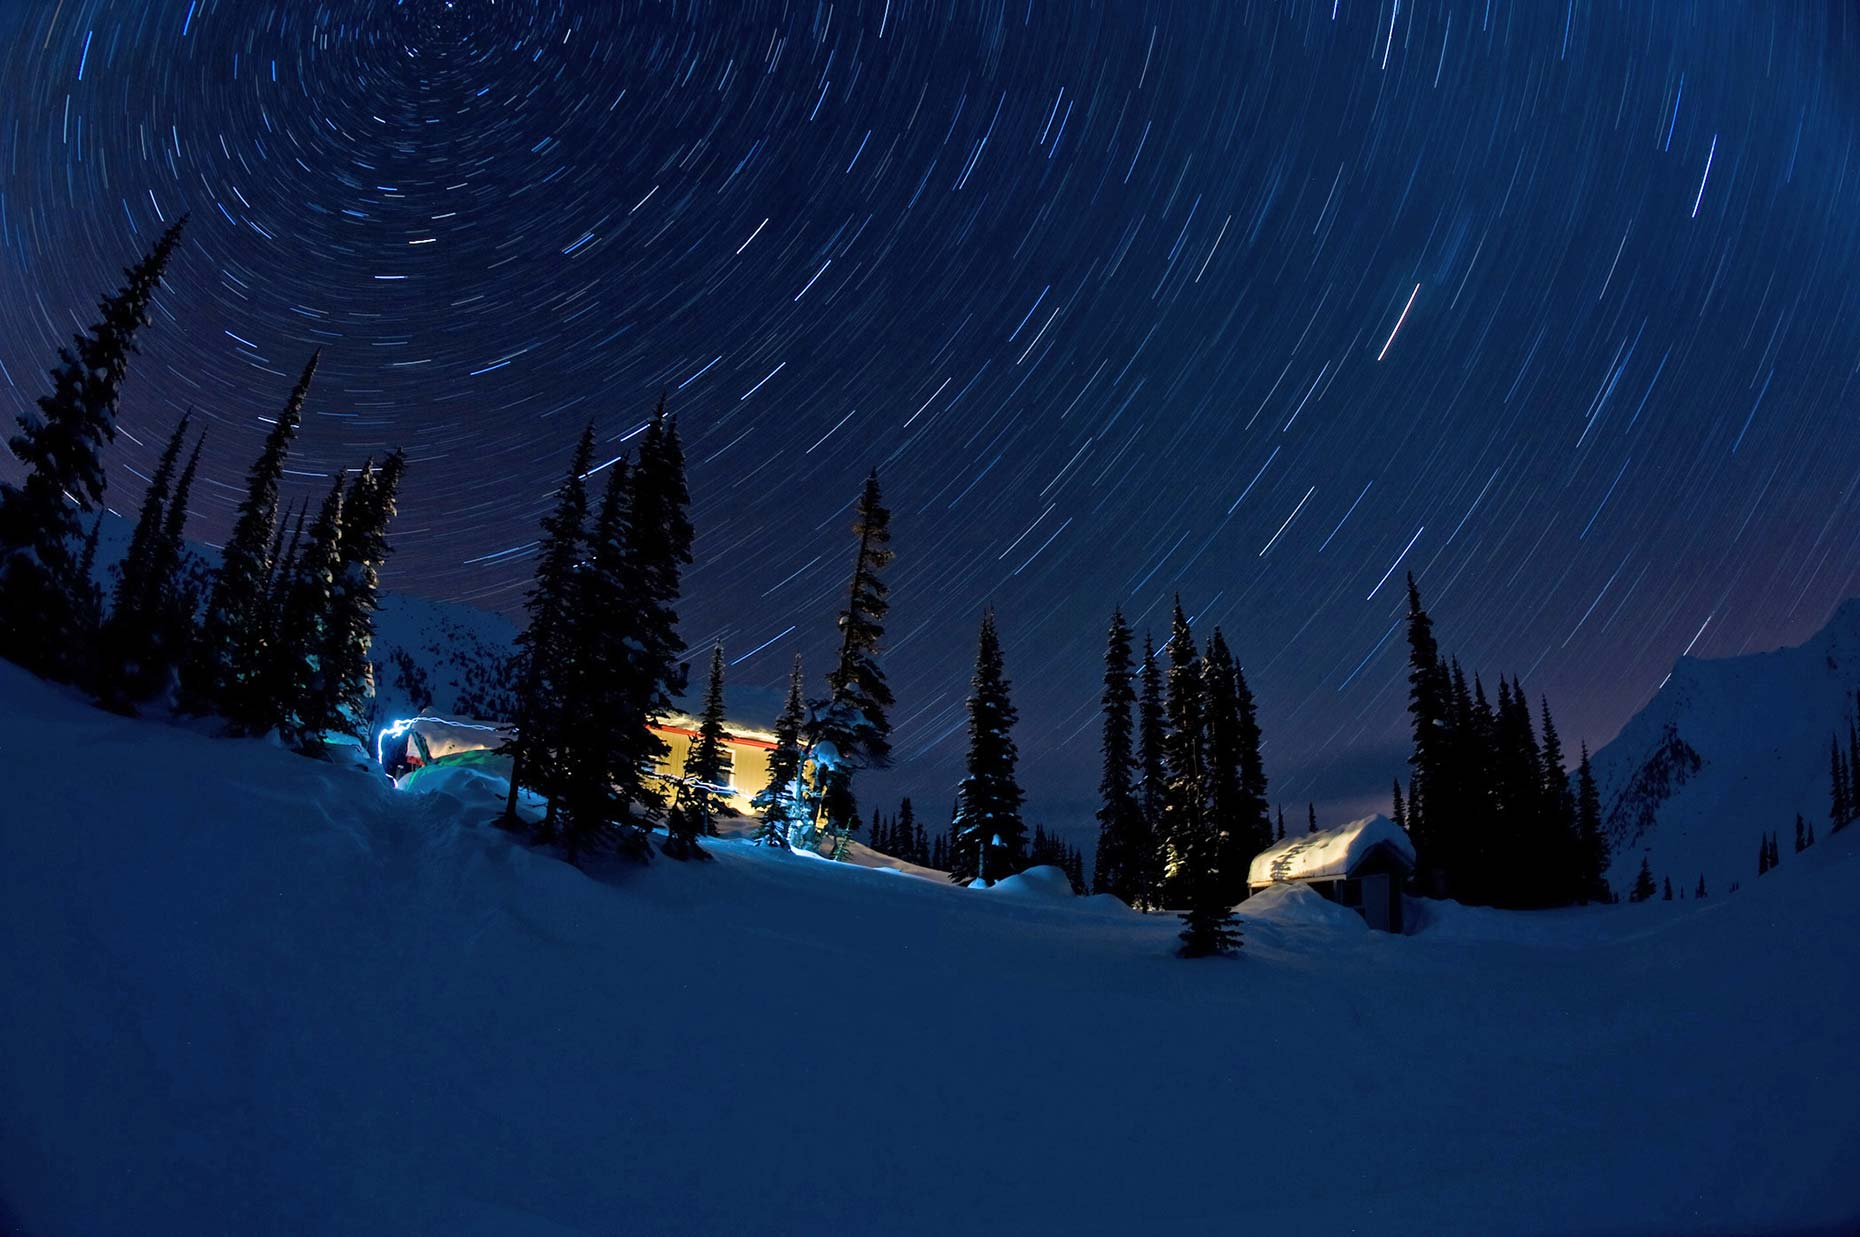 Ian-Coble-Night-Star-Trails-Lodge-BC-Canada